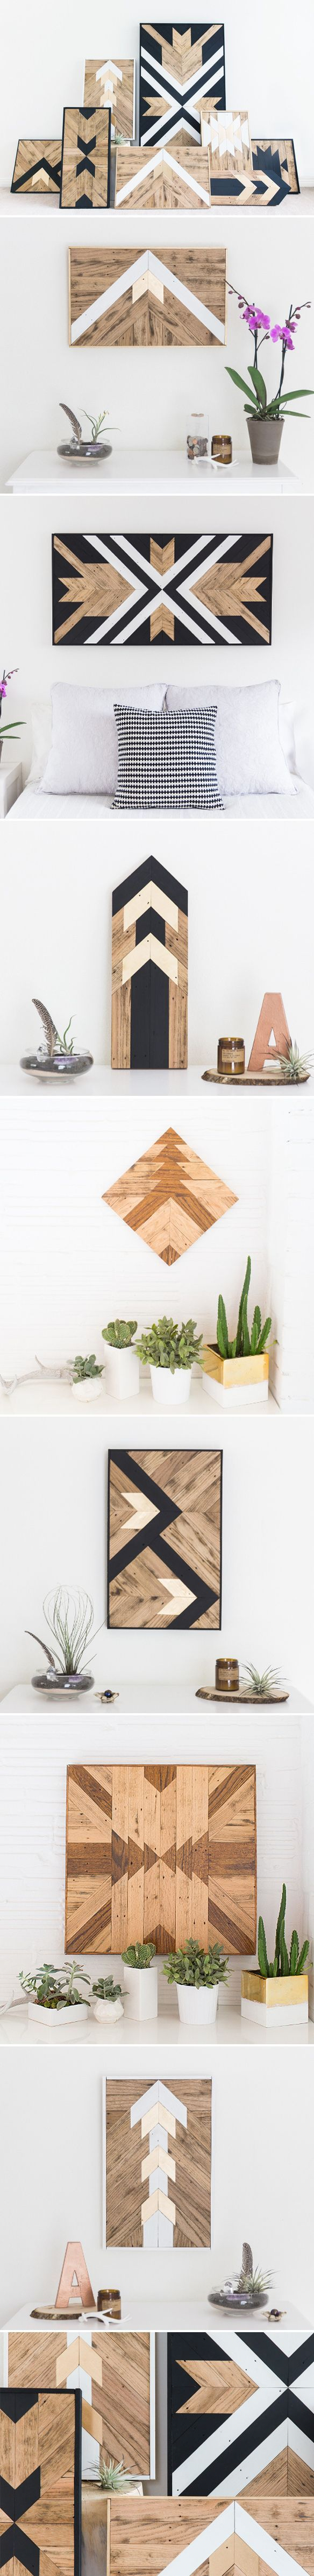 Reclaimed wood from an old oak floor in houston art pieces by bri